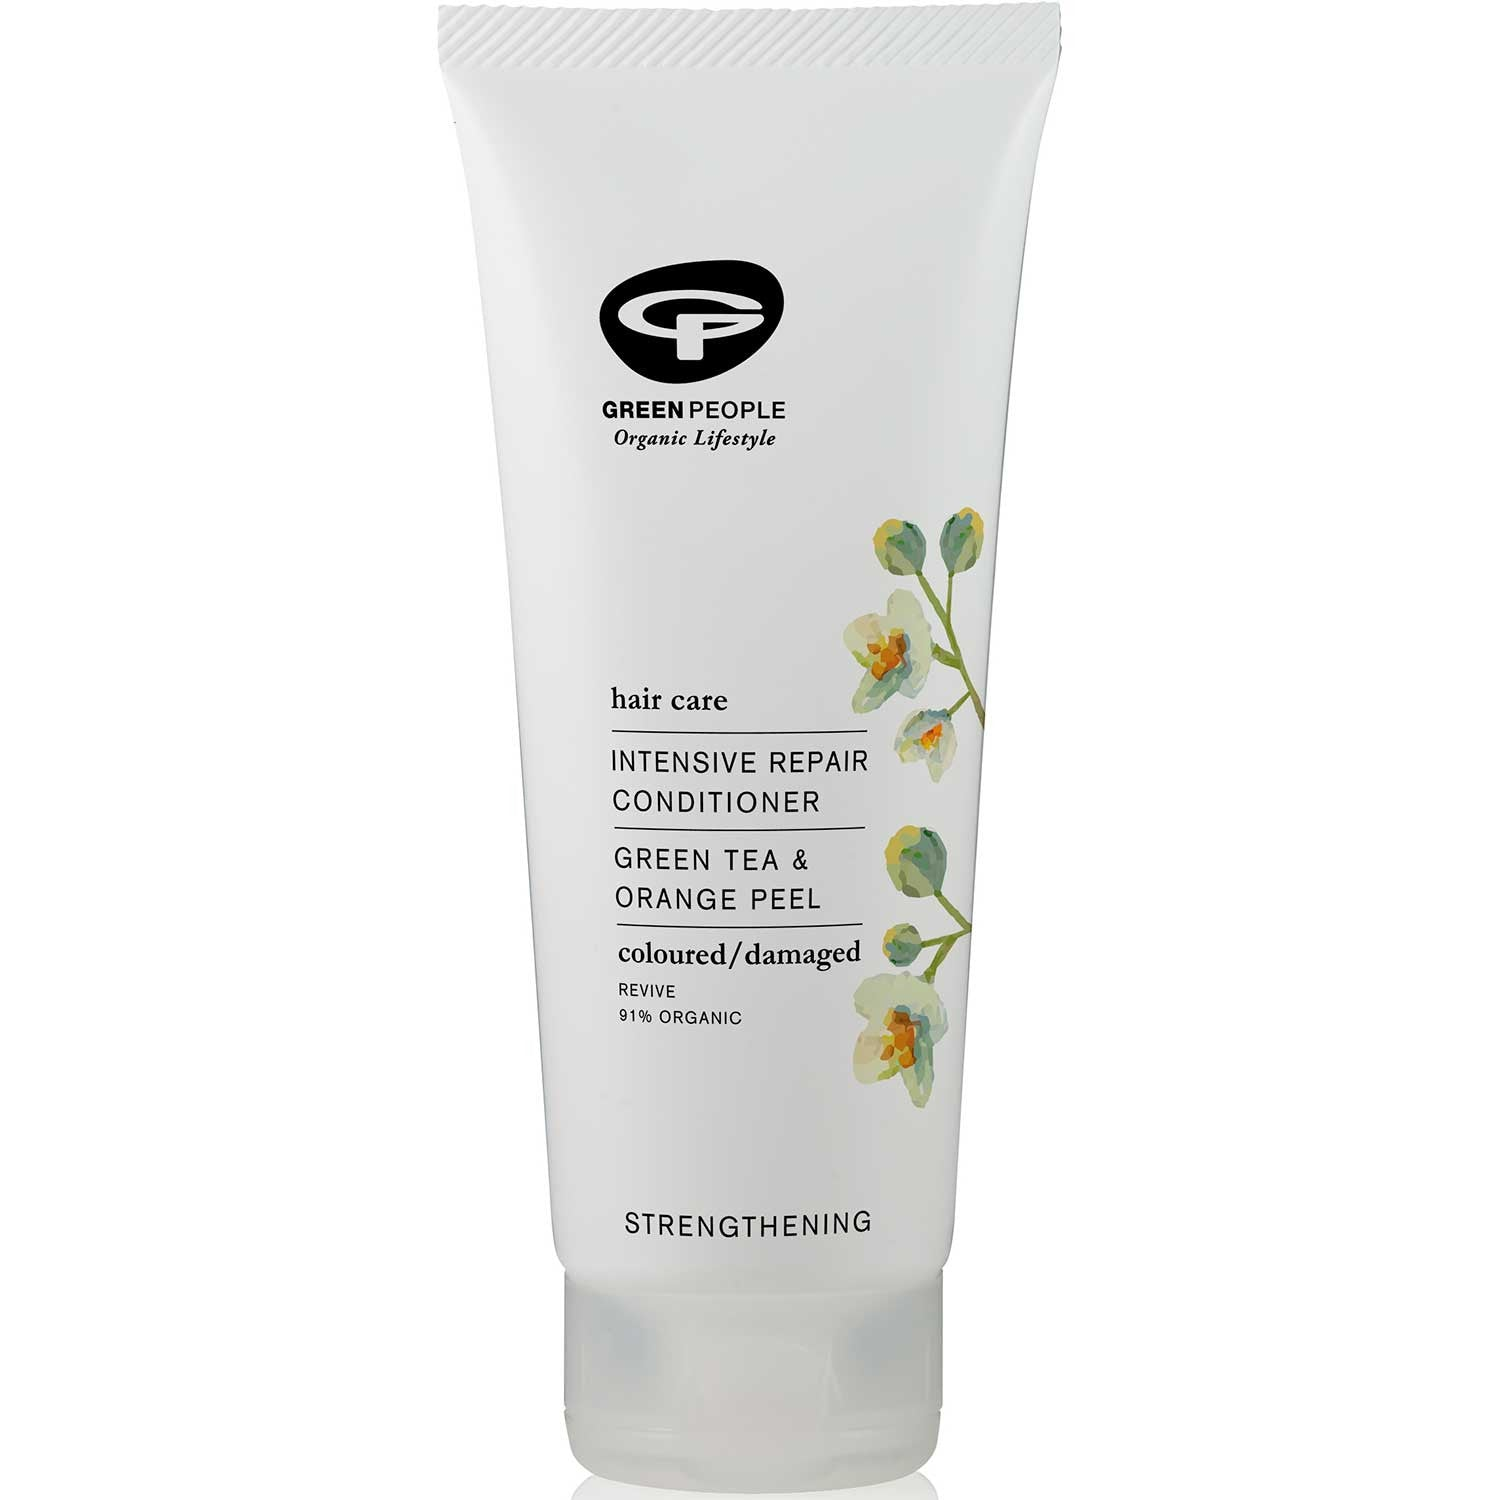 Green People Intensive Repair Conditioner, 200 ml.-NaturesWisdom